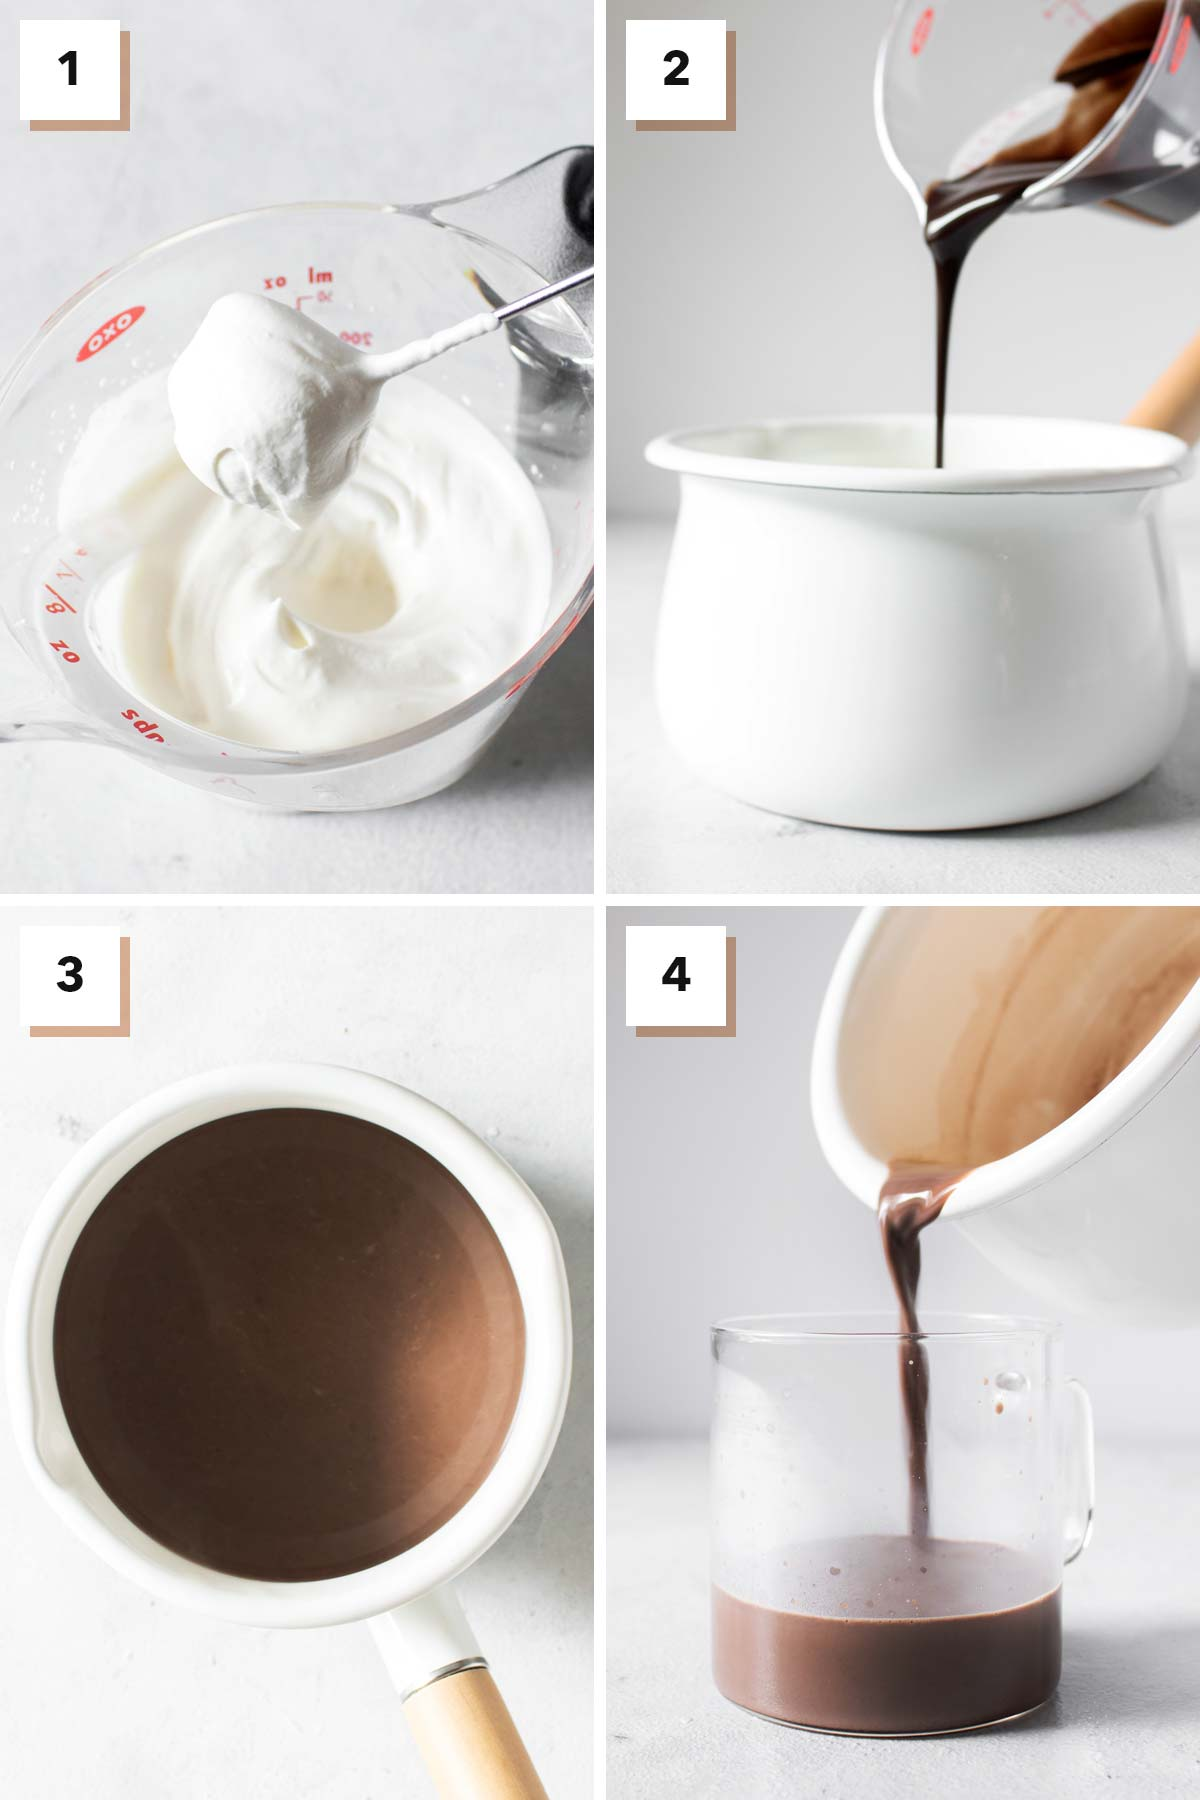 Four photos showing the steps to make hot chocolate.